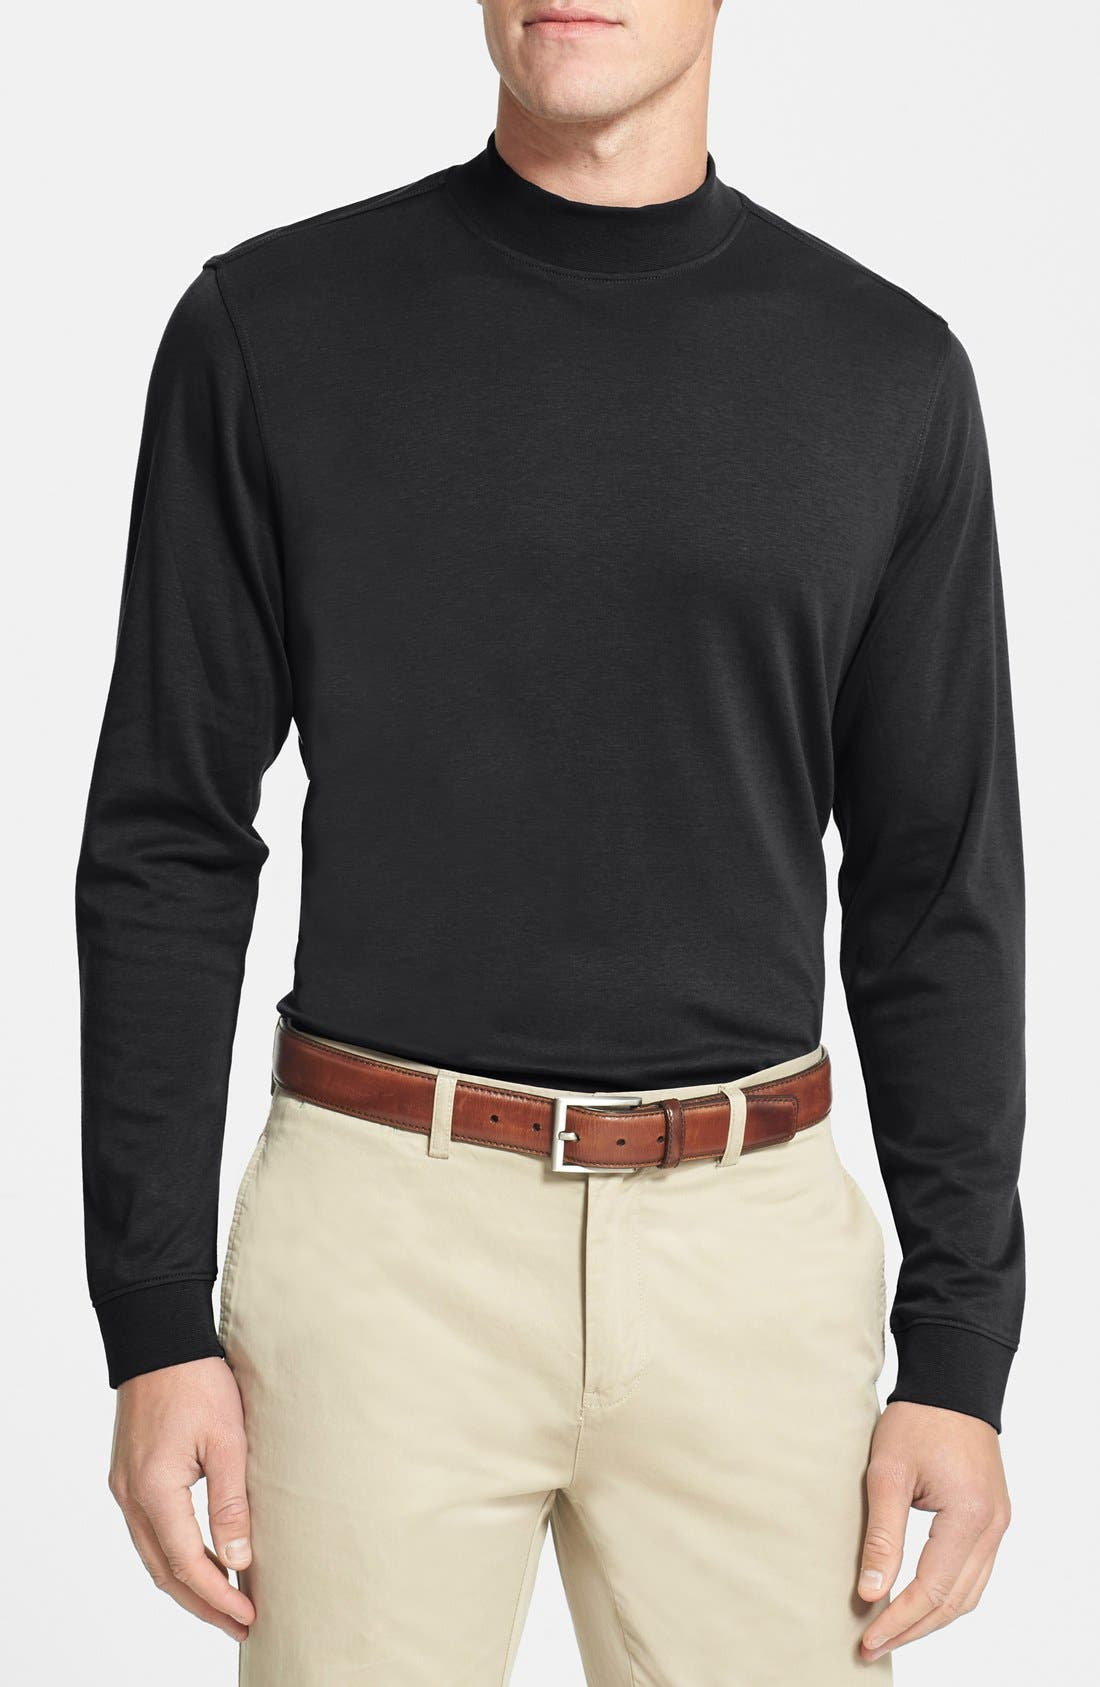 Alternate Image 1 Selected - Cutter & Buck Belfair Long Sleeve Mock Neck Pima Cotton T-Shirt